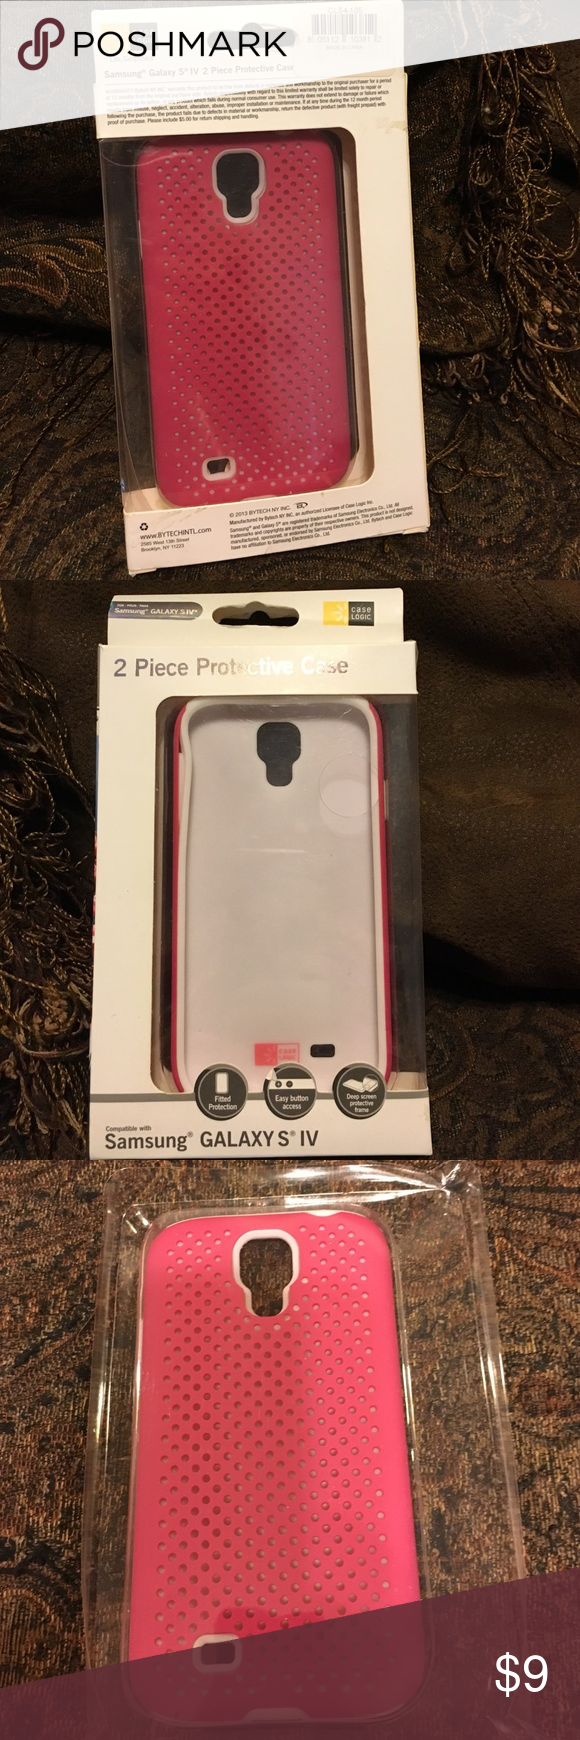 Samsung Galaxy's 5 Case Samsung Galaxy S 5 protective 2 piece cell phone case. New in box never been used. Case Logic Accessories Phone Cases